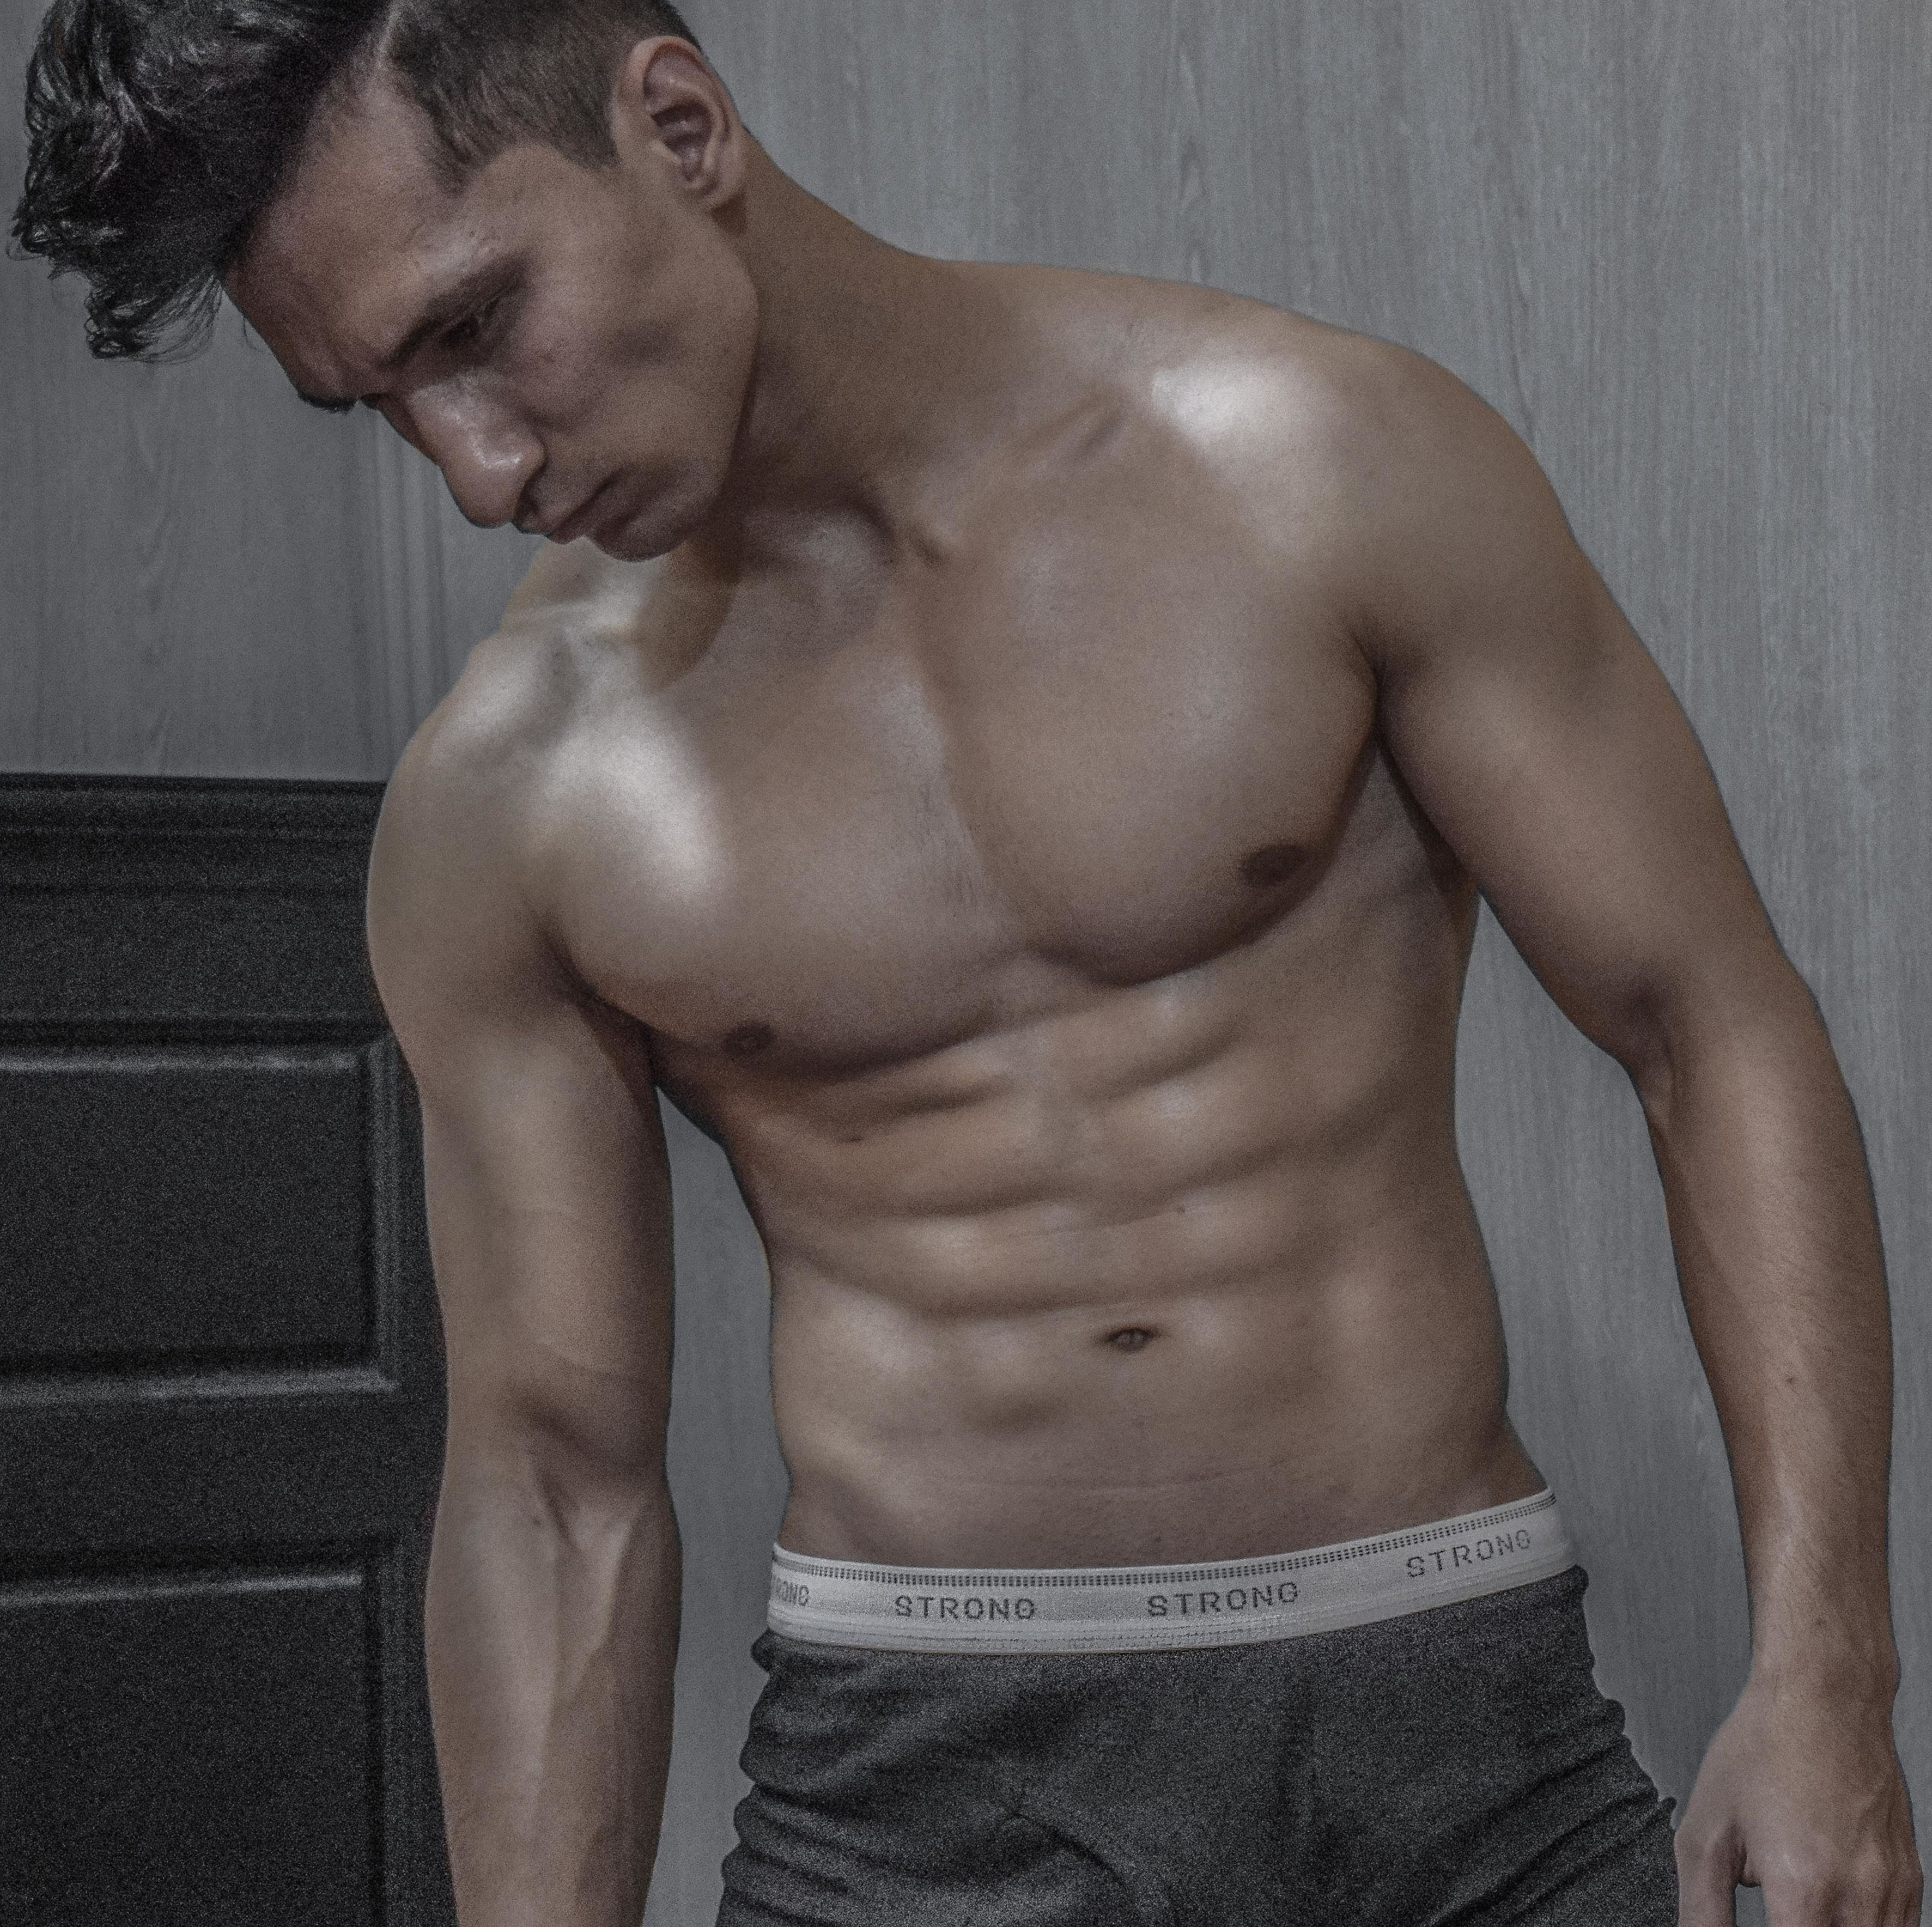 indoors, lifestyles, young adult, young men, person, leisure activity, bonding, love, wall - building feature, shirtless, togetherness, casual clothing, front view, eyes closed, relaxation, three quarter length, mid adult, men